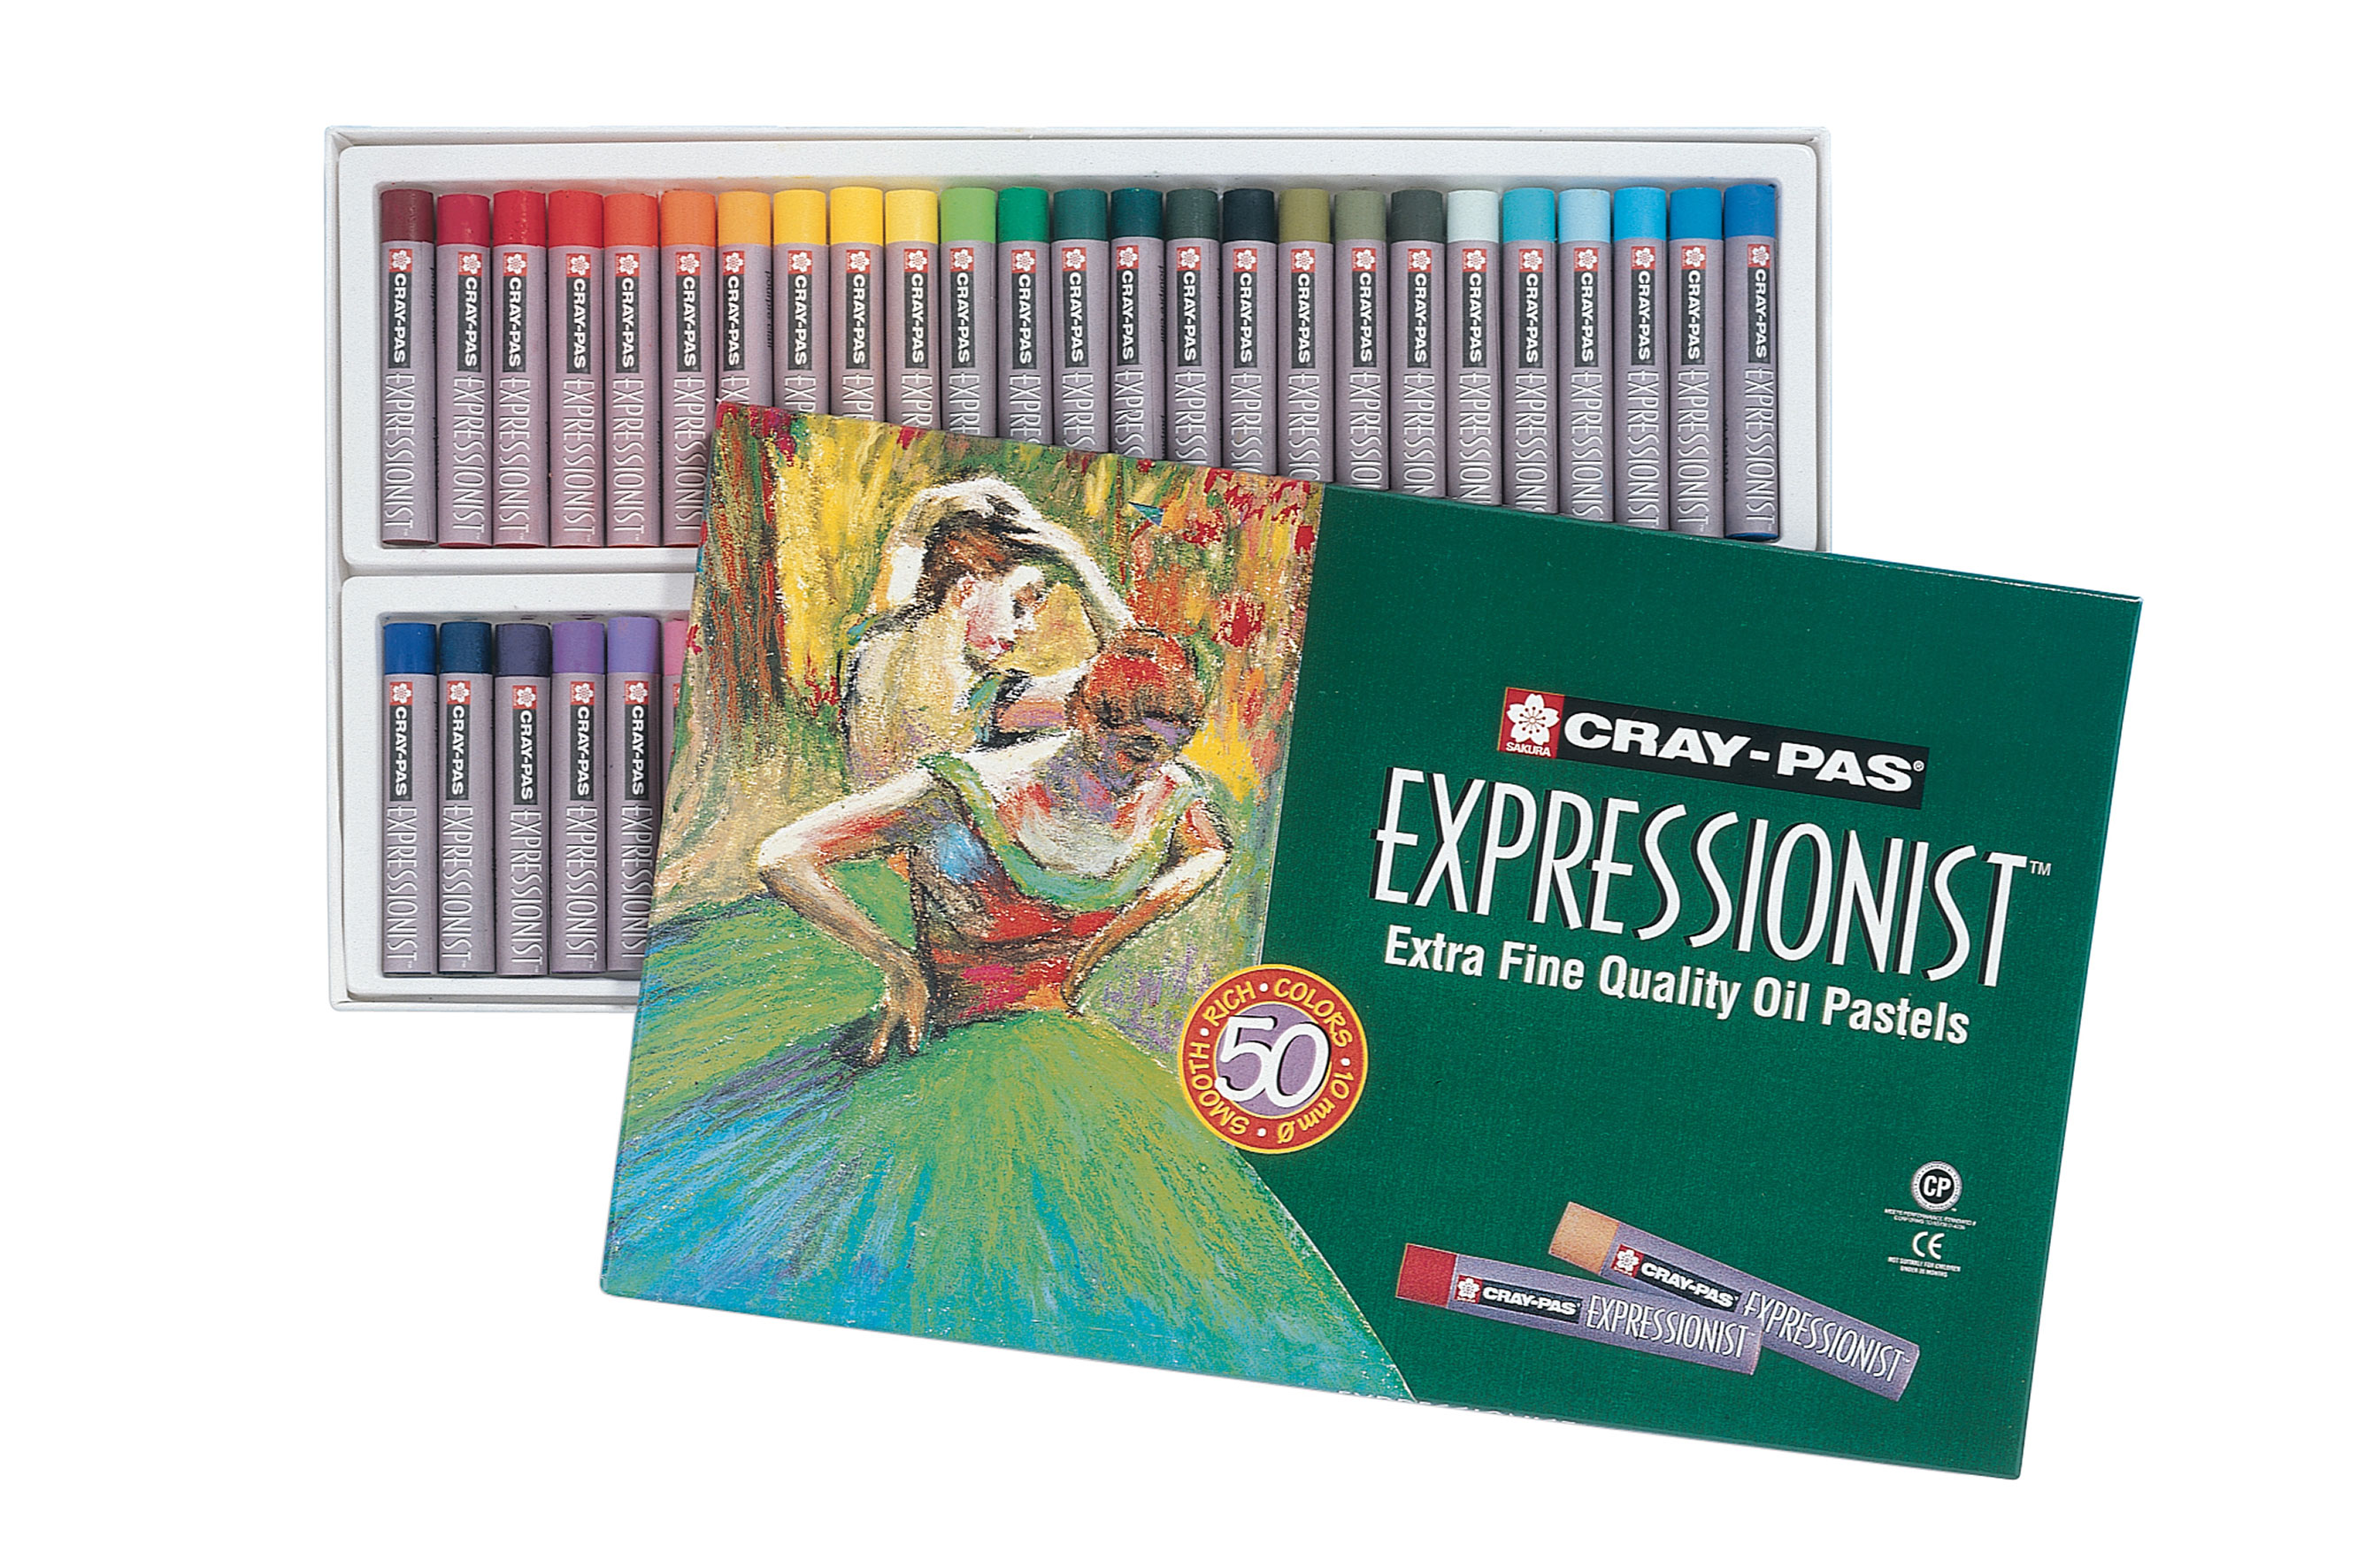 Cray-Pas Expressionist Set 50 Oil Pastels